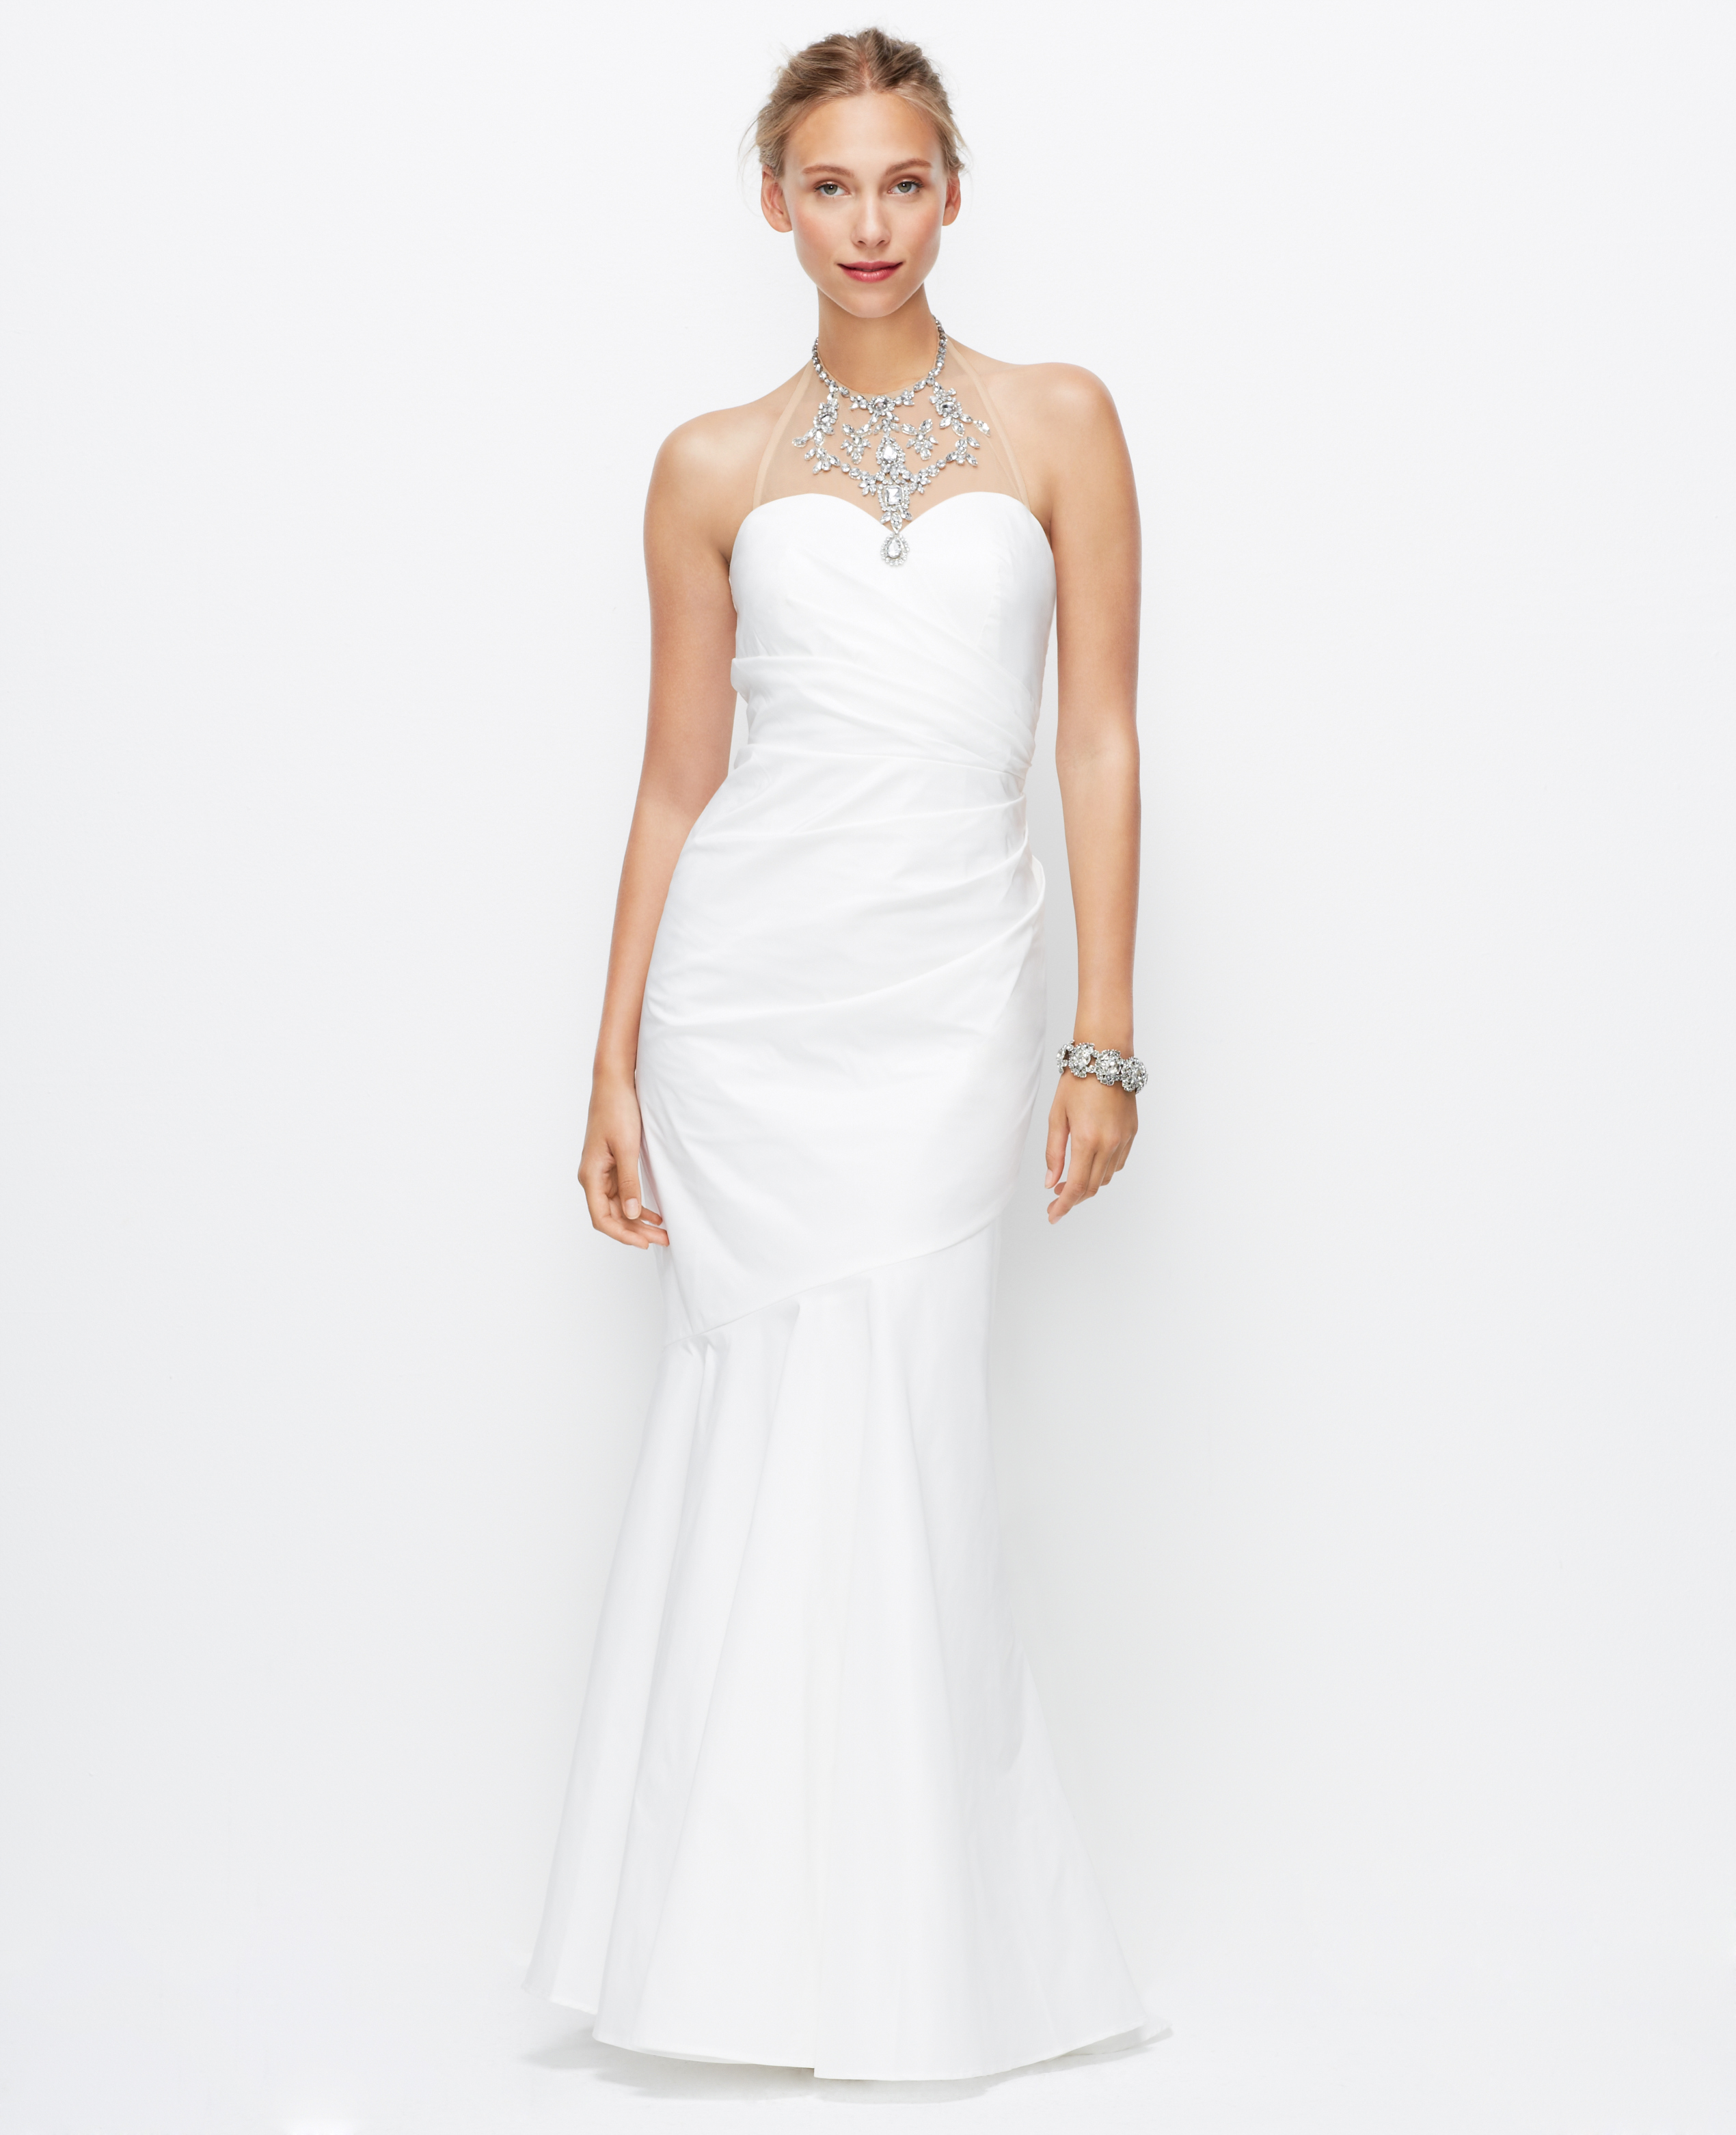 top wedding dress designers list 2016 106